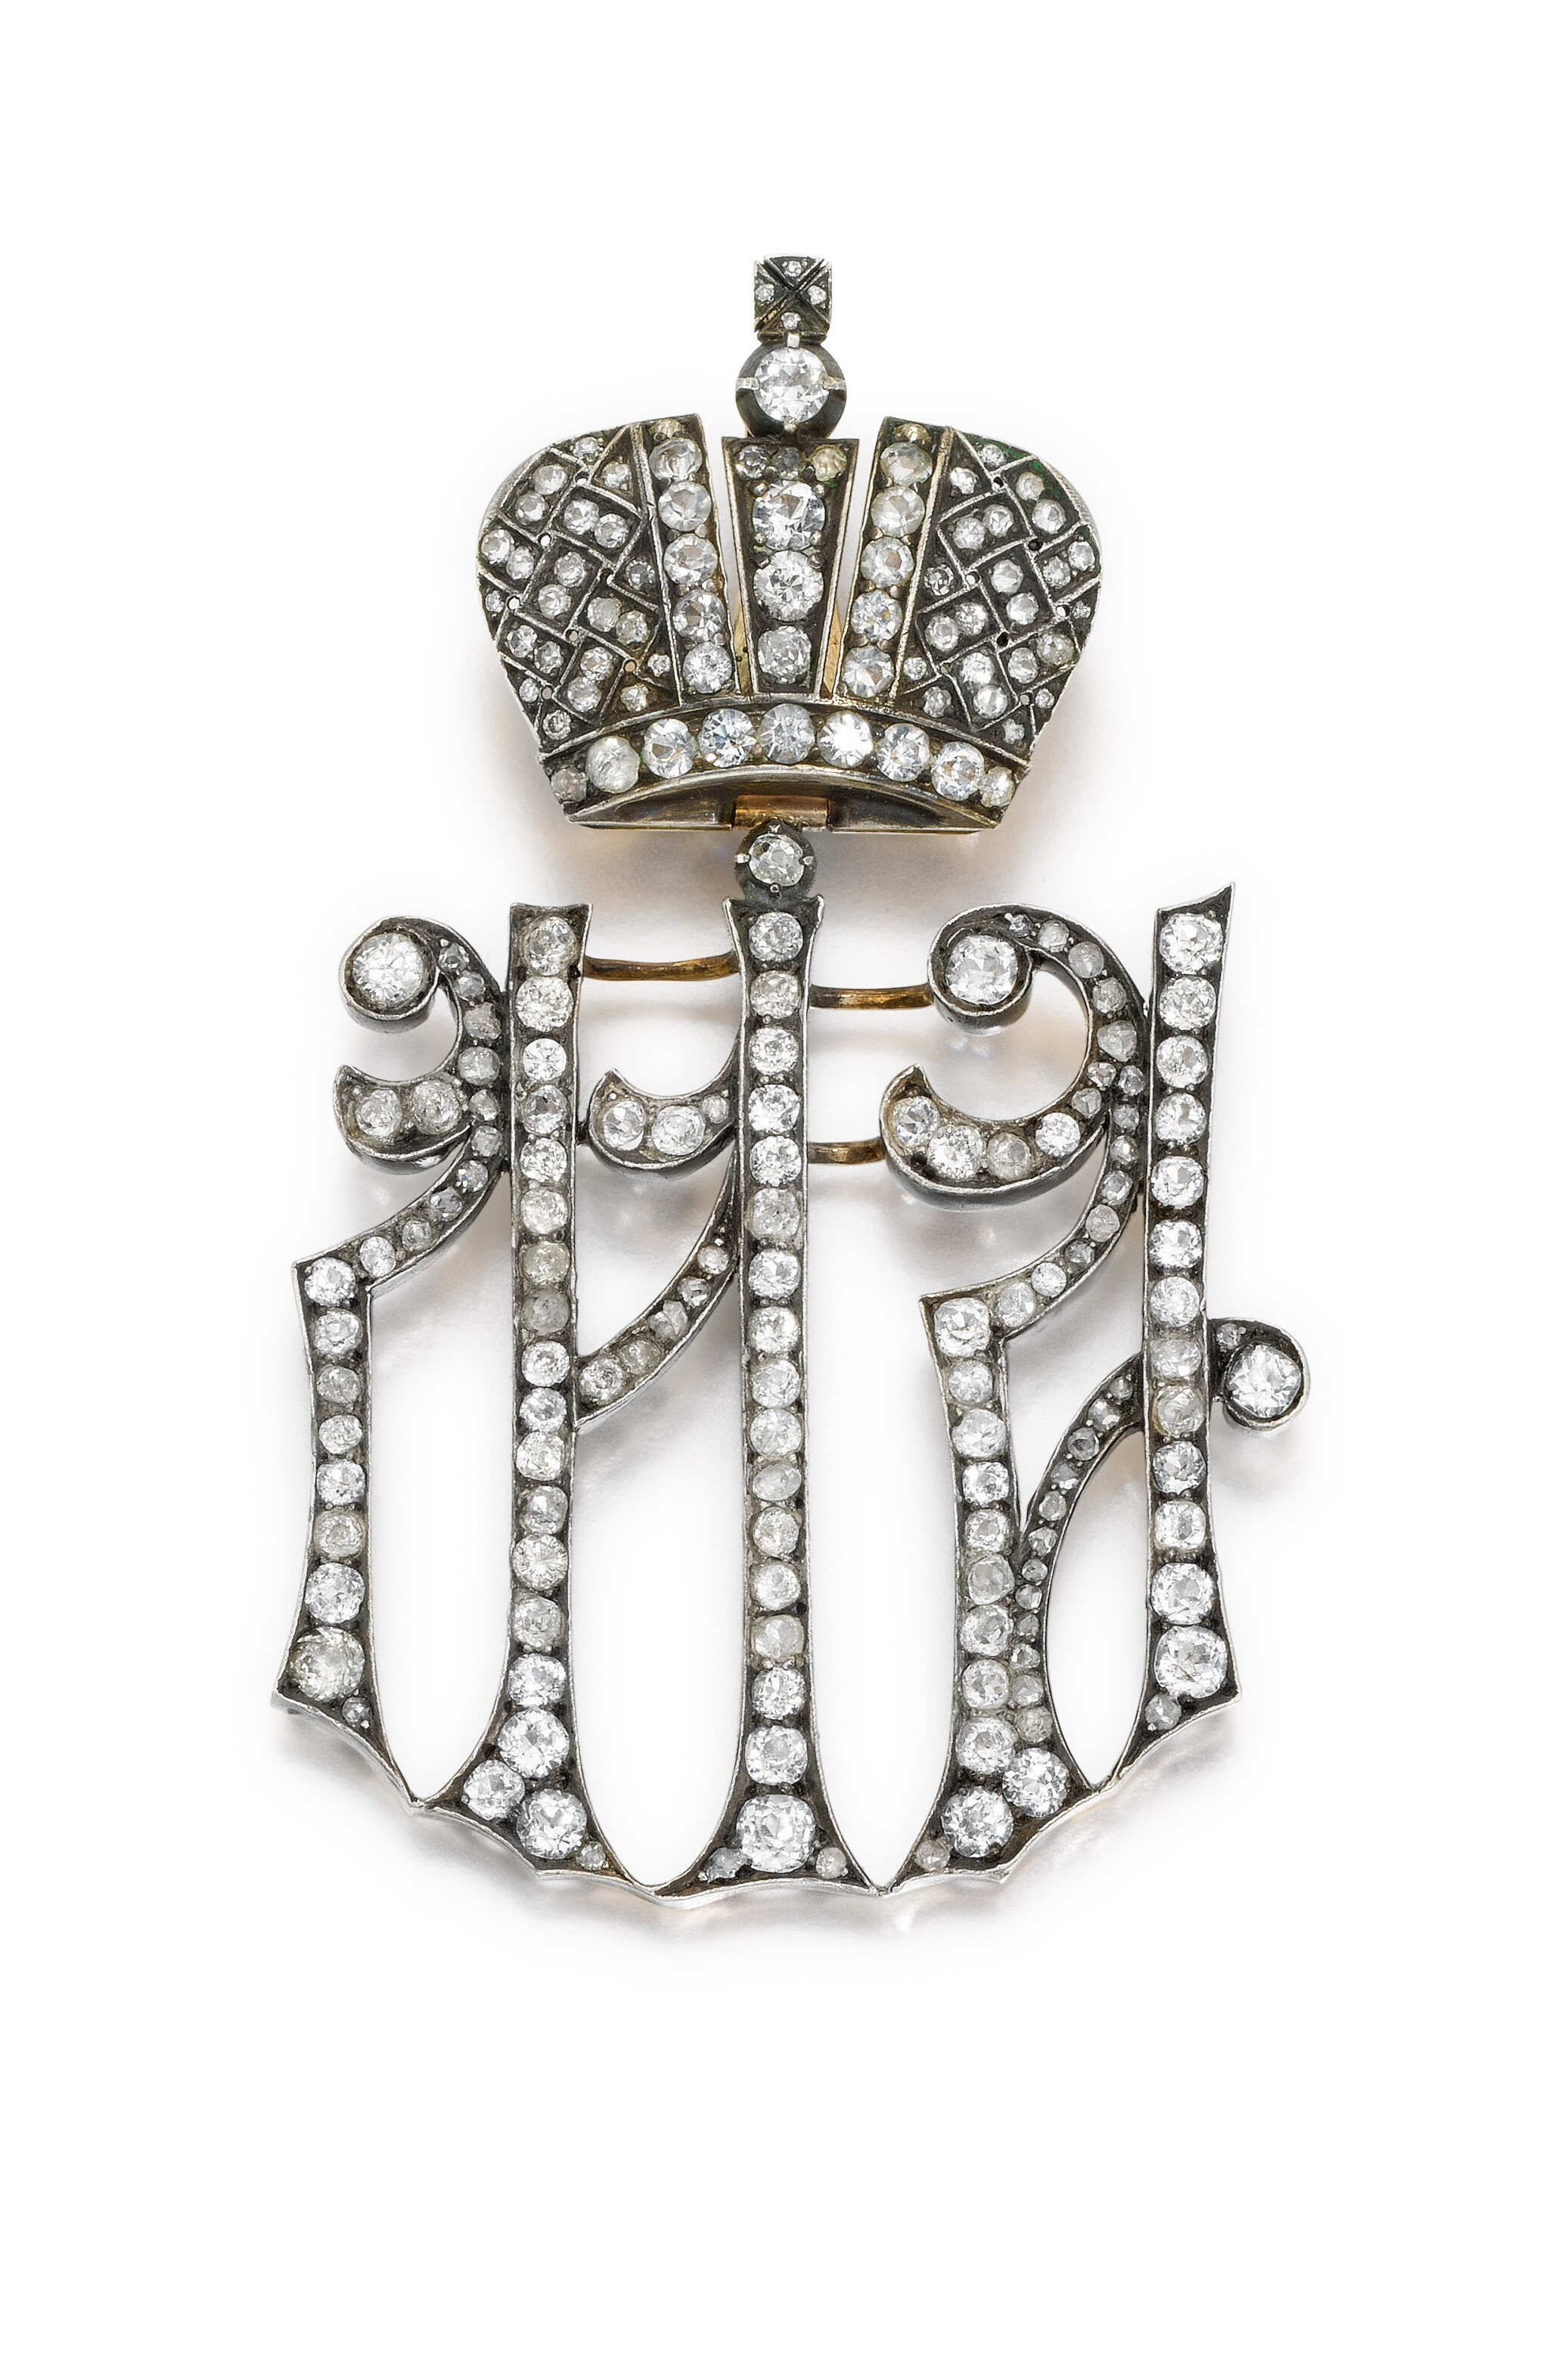 A silver-gilt Maid of Honour cypher